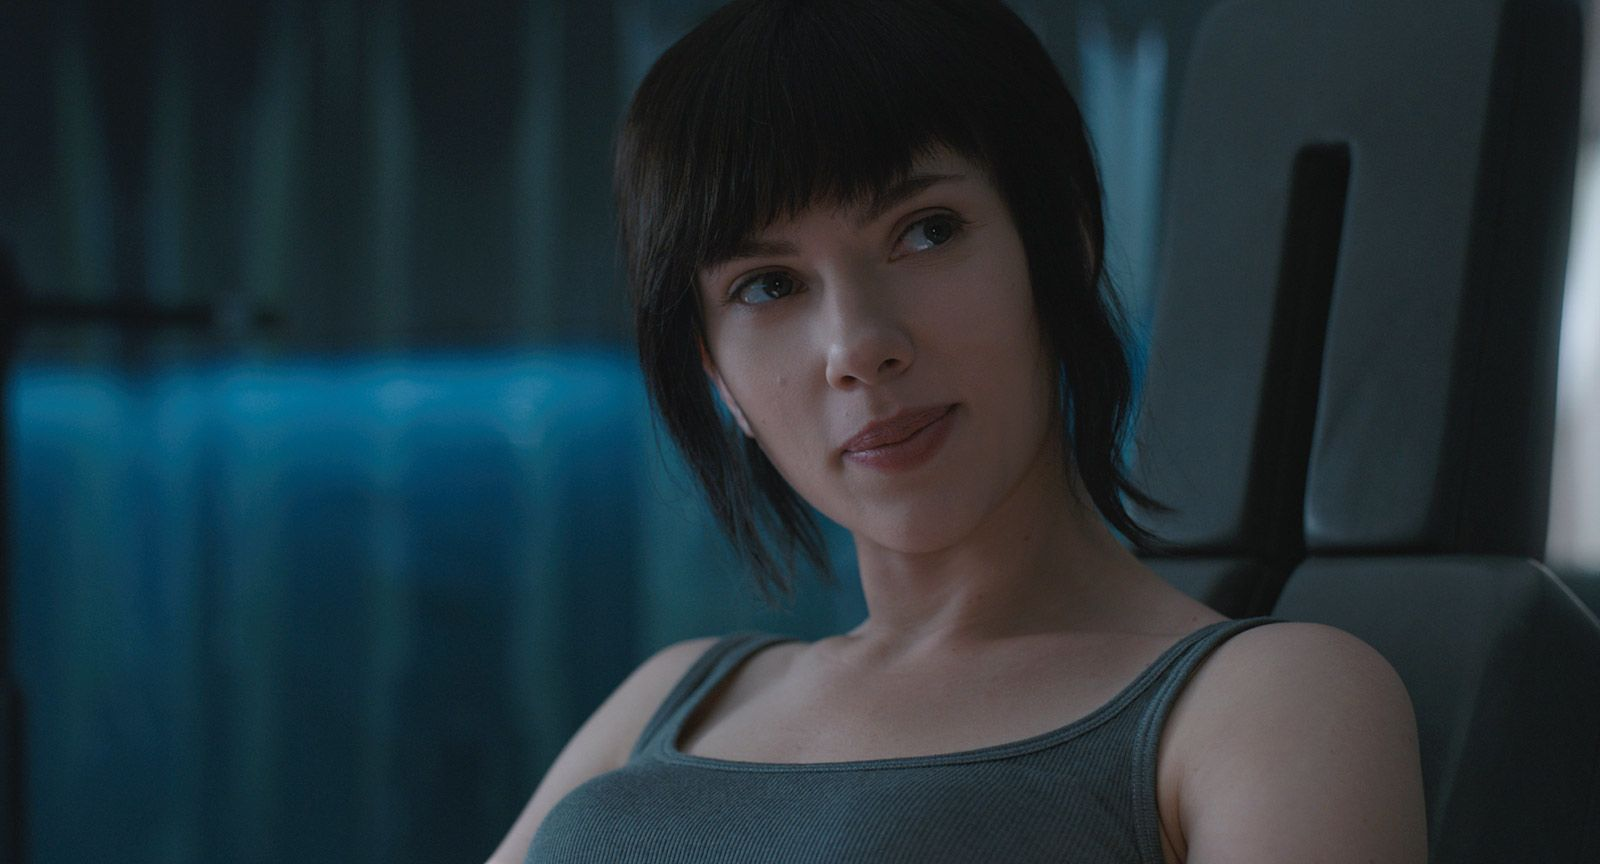 Ghost in the Shell sur Amazon Prime Video : Scarlett Johansson au cœur d'une polémique sur le white whashing